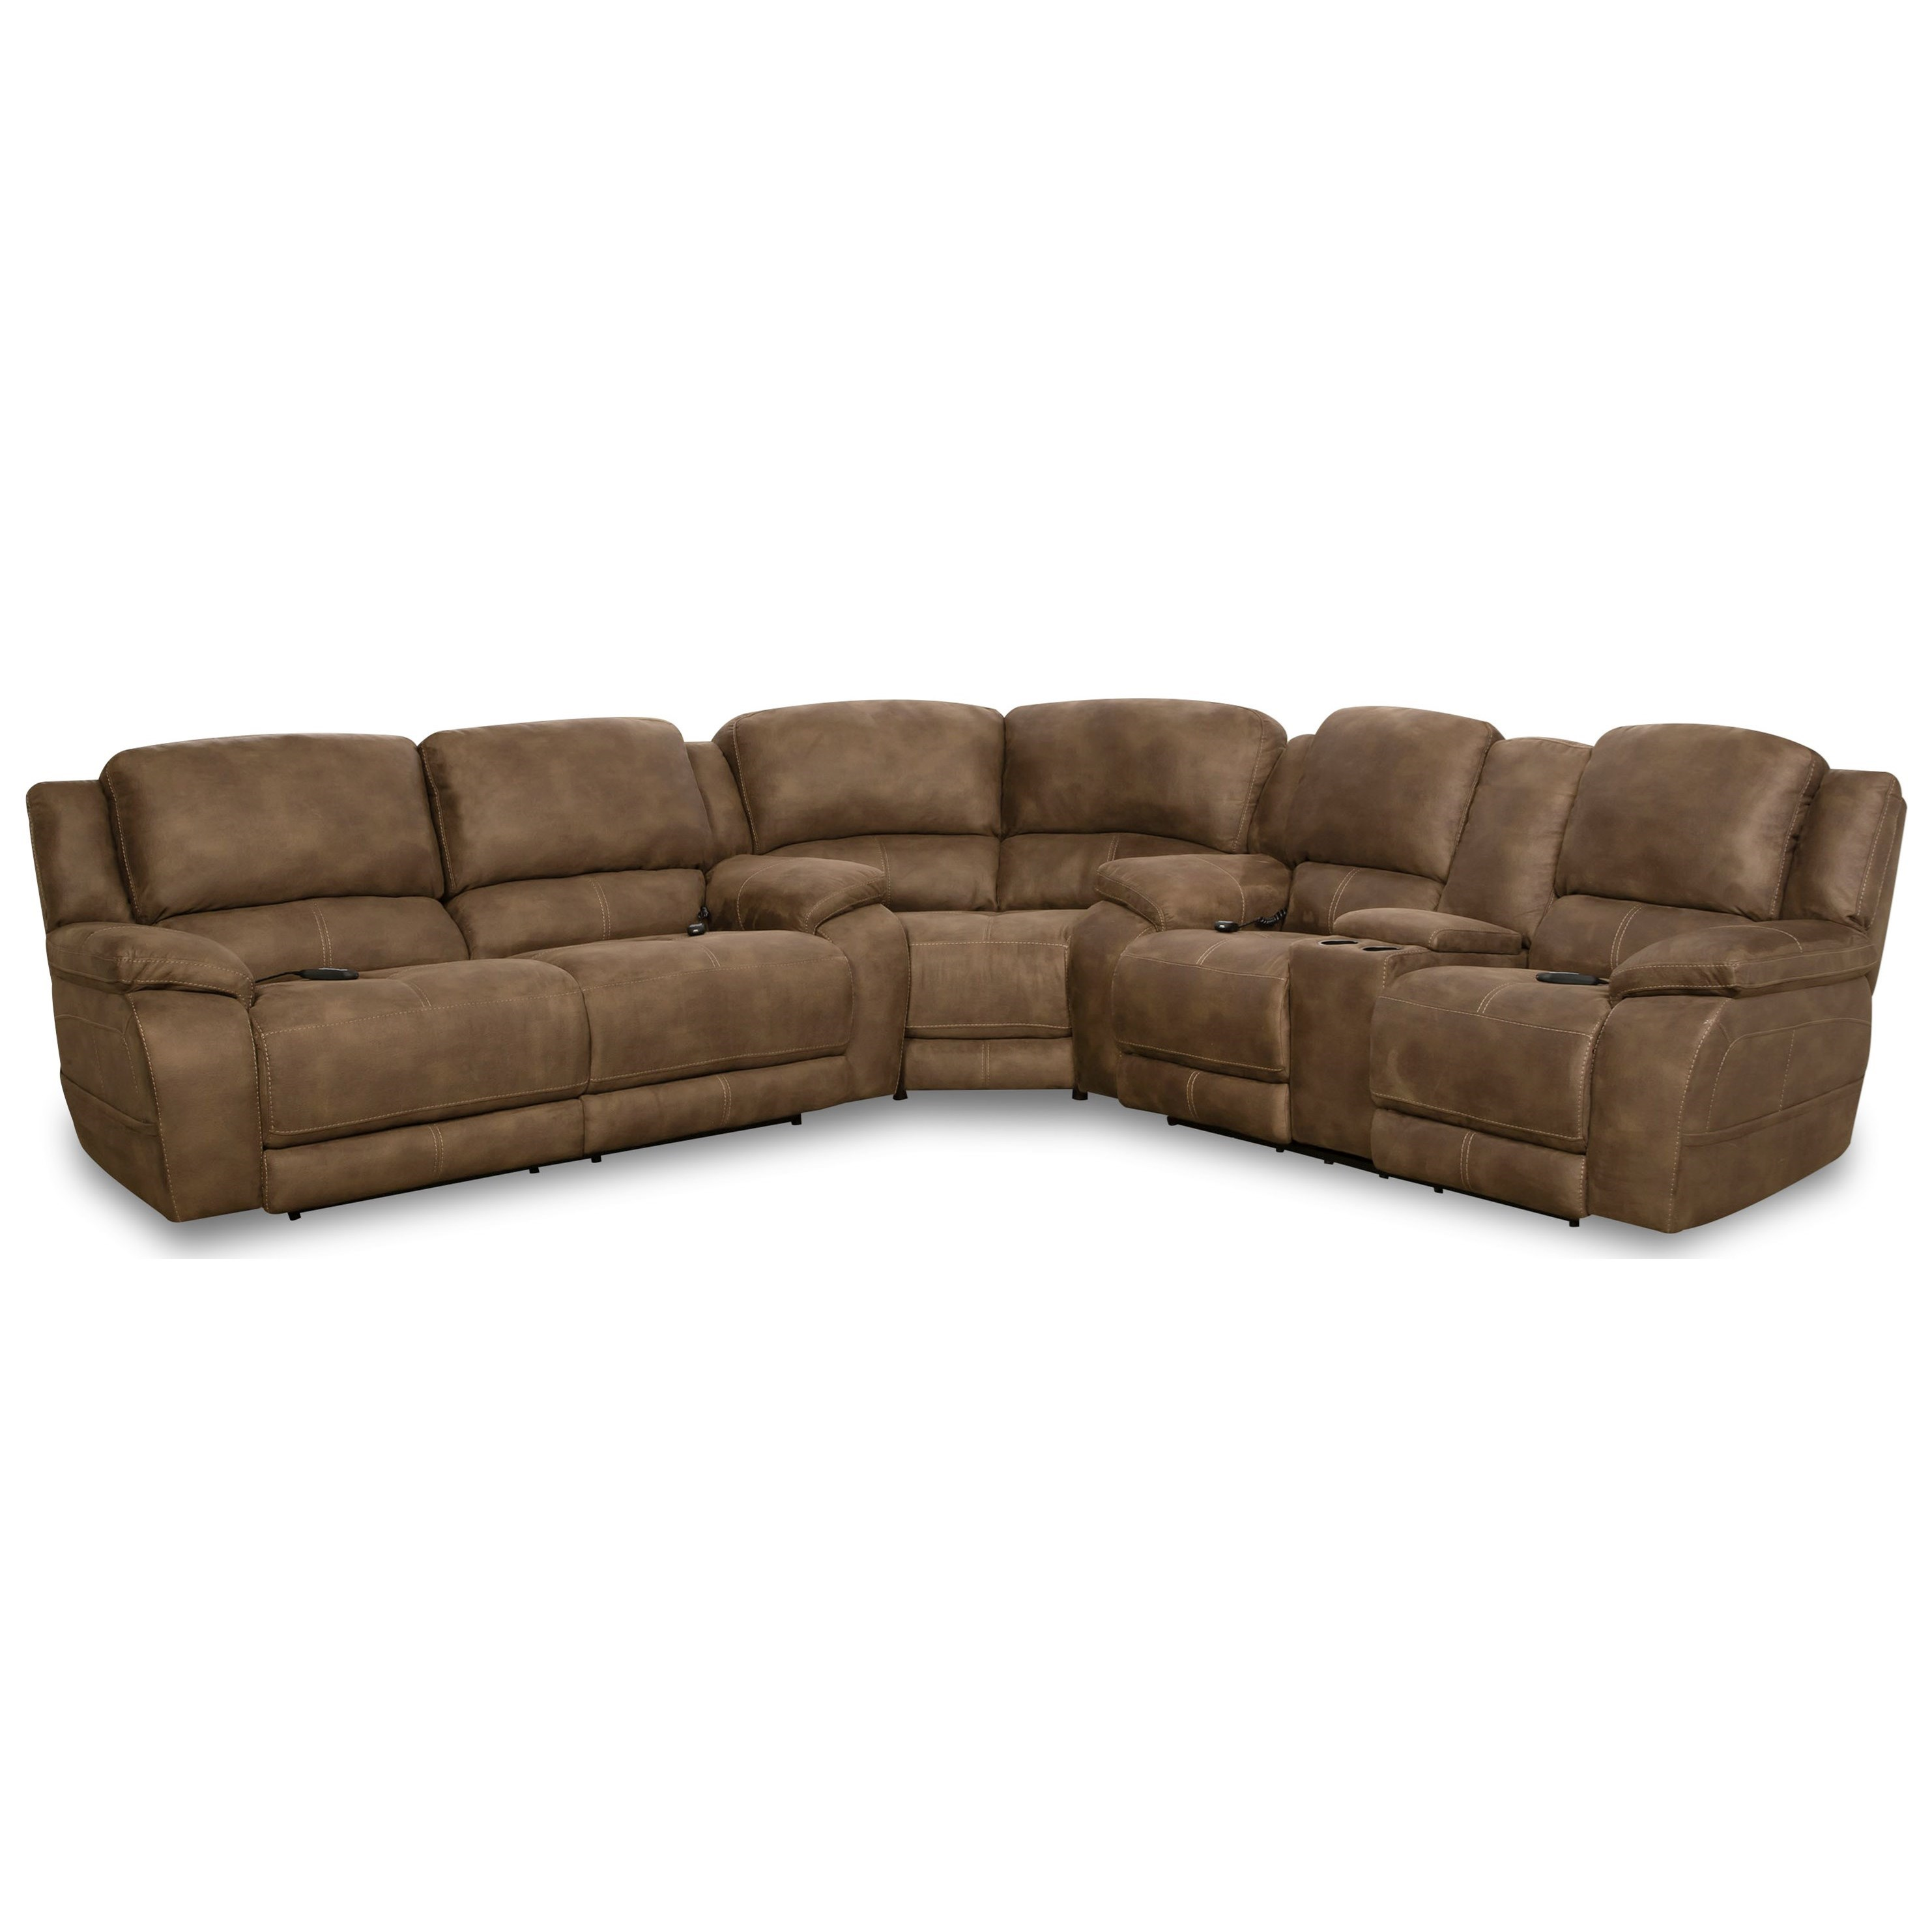 Explorer Power Sectional by HomeStretch at Rife's Home Furniture